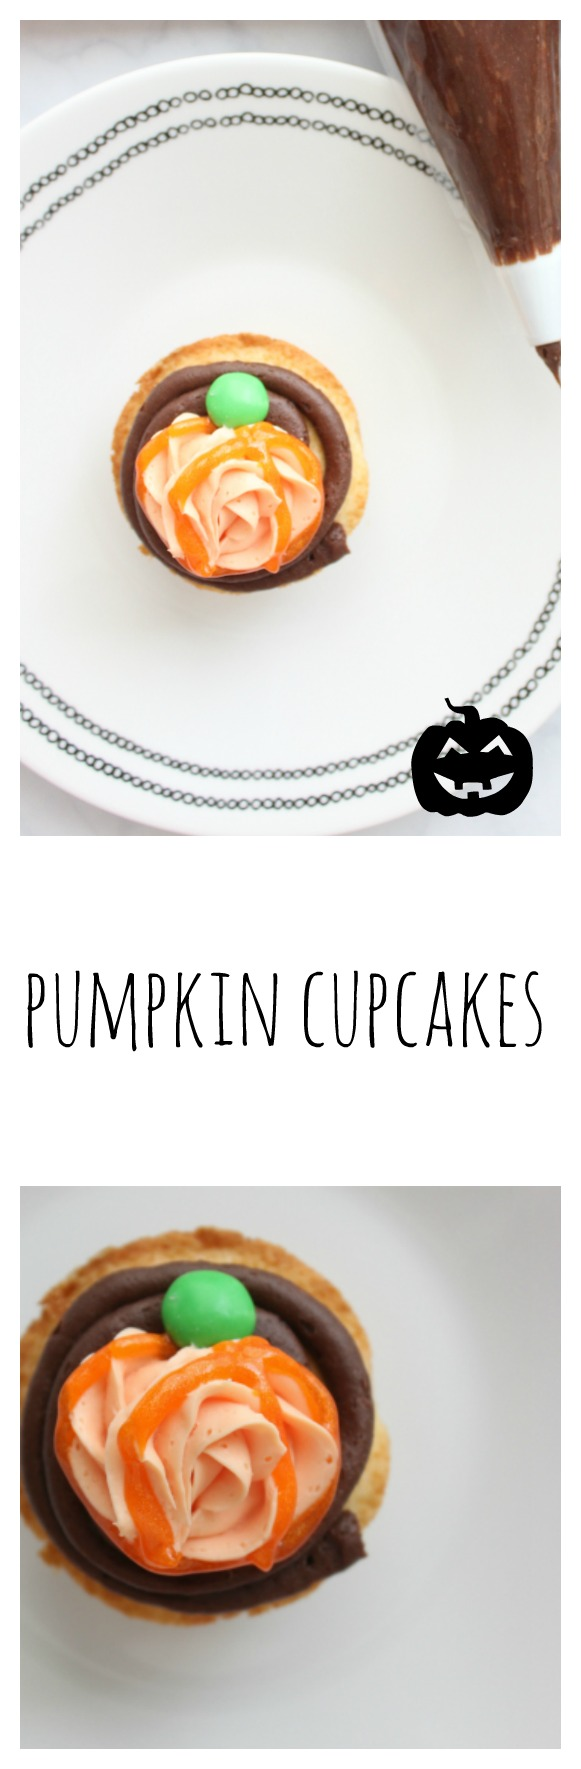 pumpkin-cupcakes-easy-to-make